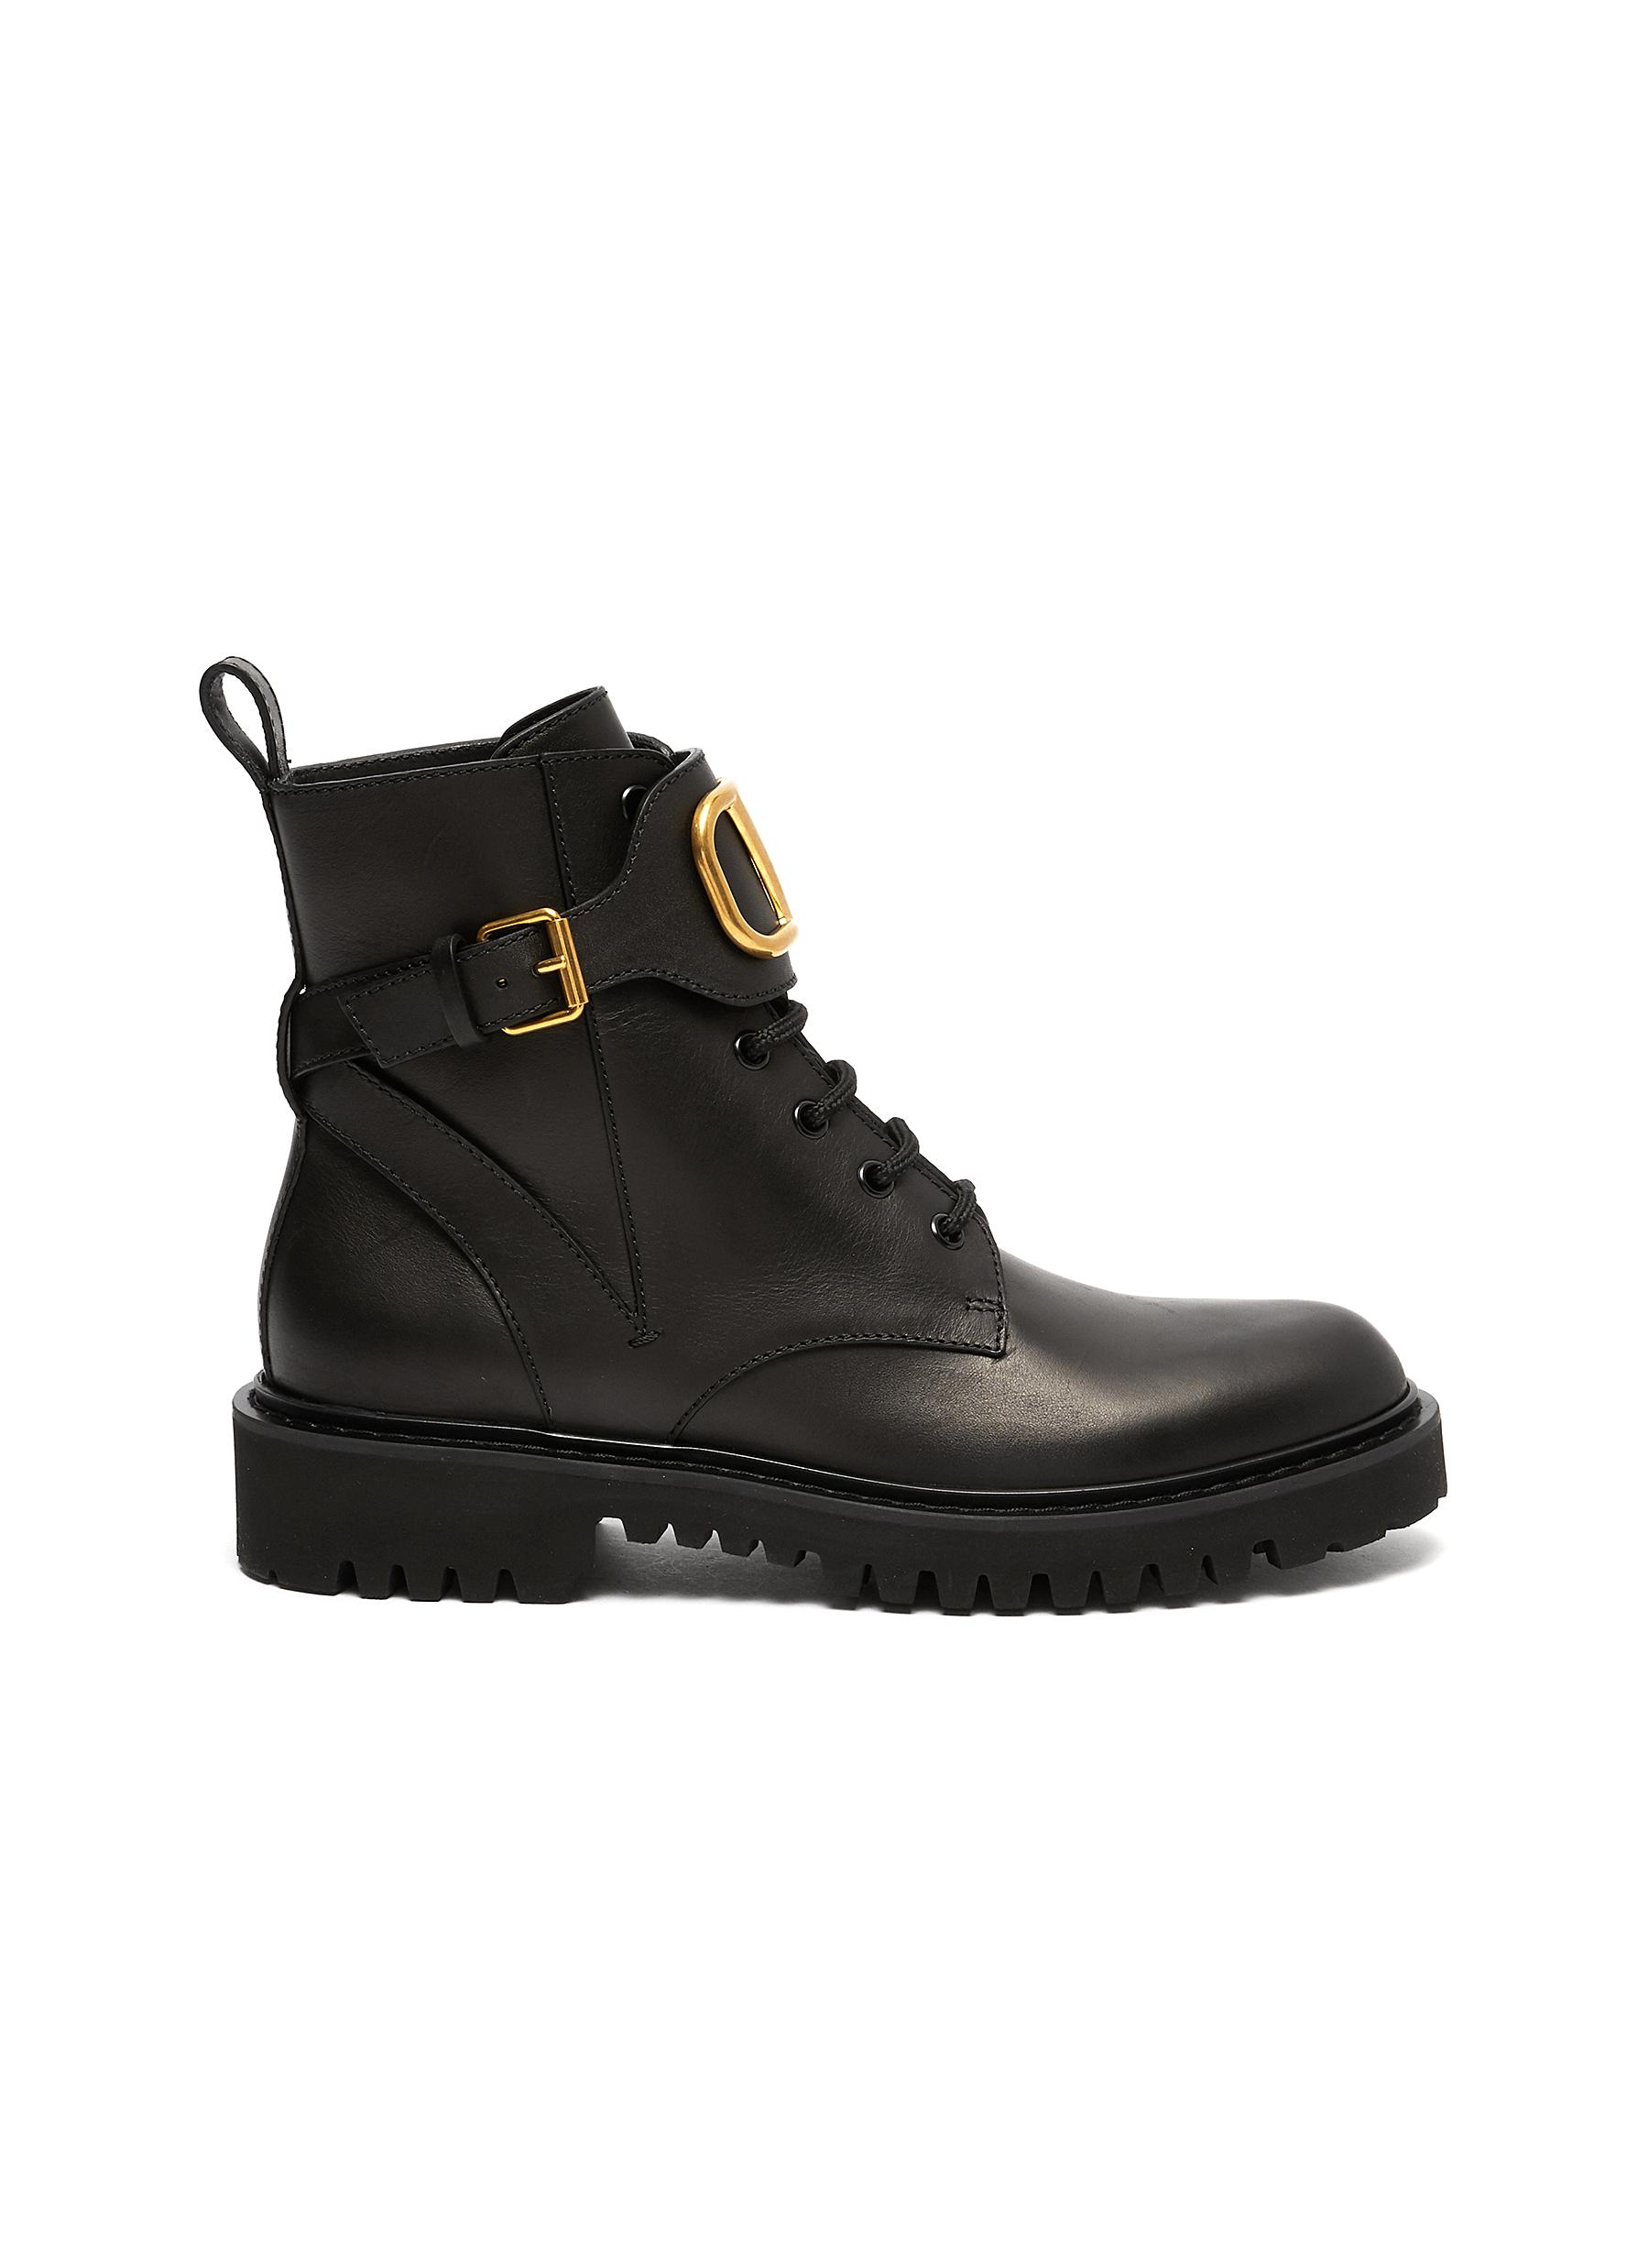 VLOGO buckle leather combat boots by Valentino